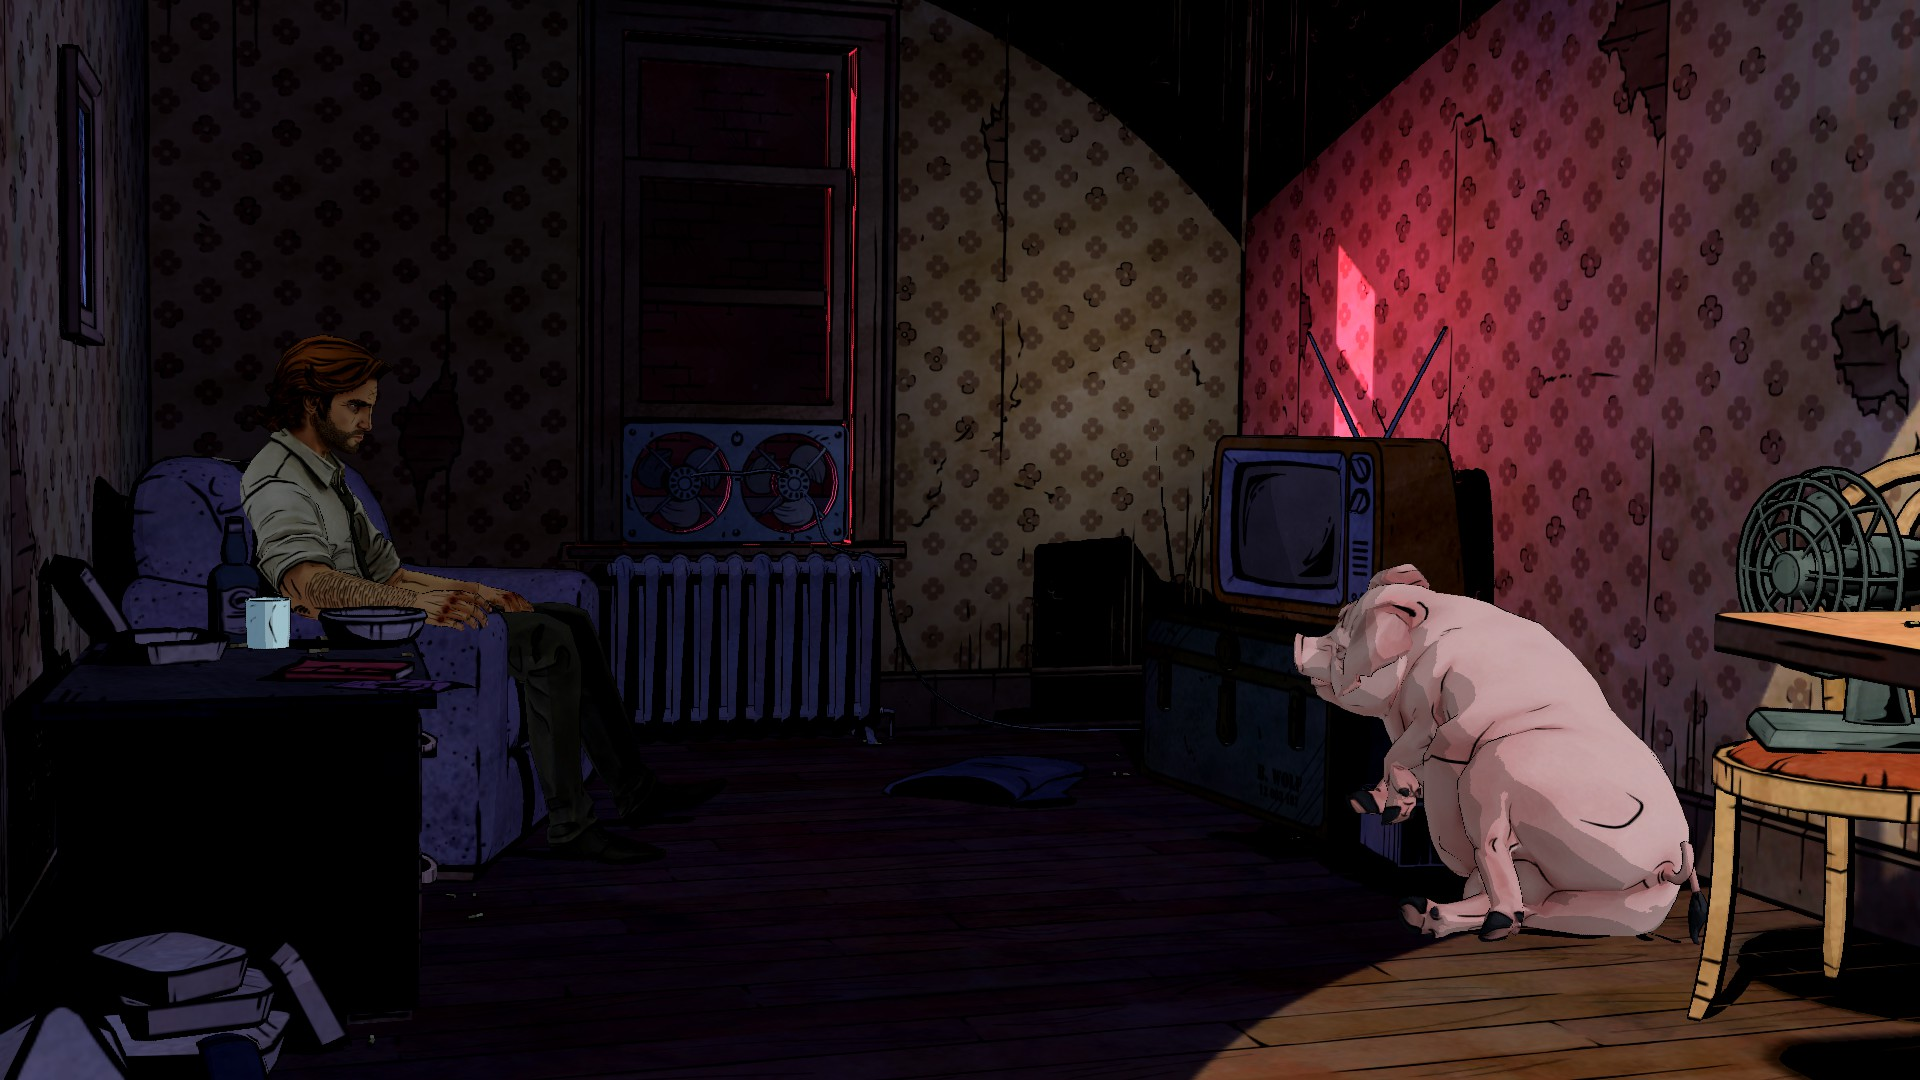 THE WOLF AMONG US game pig wallpaper background 1920x1080